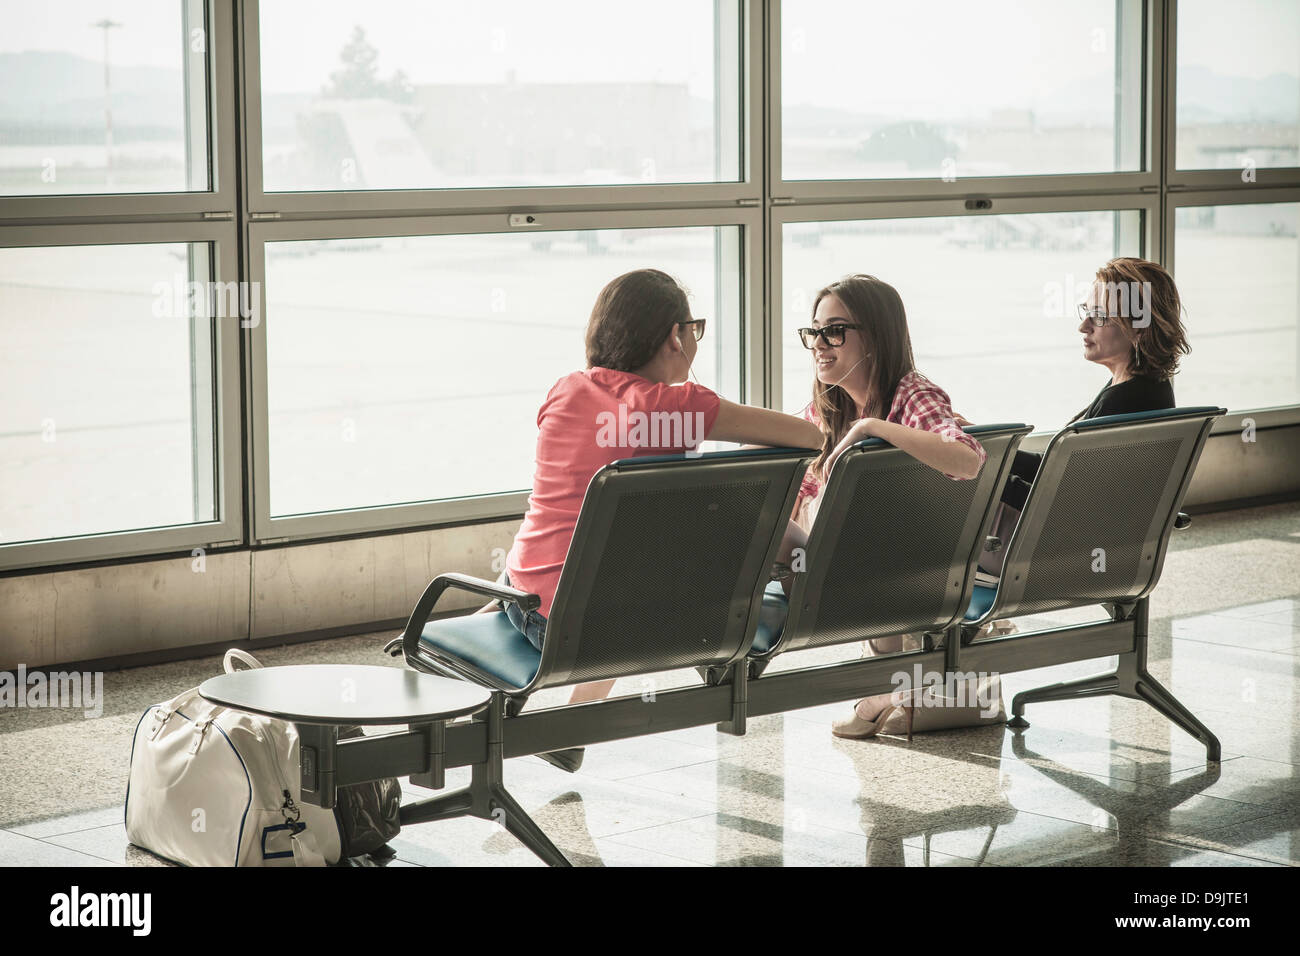 Two teenage girls and woman sitting in airport departure lounge - Stock Image